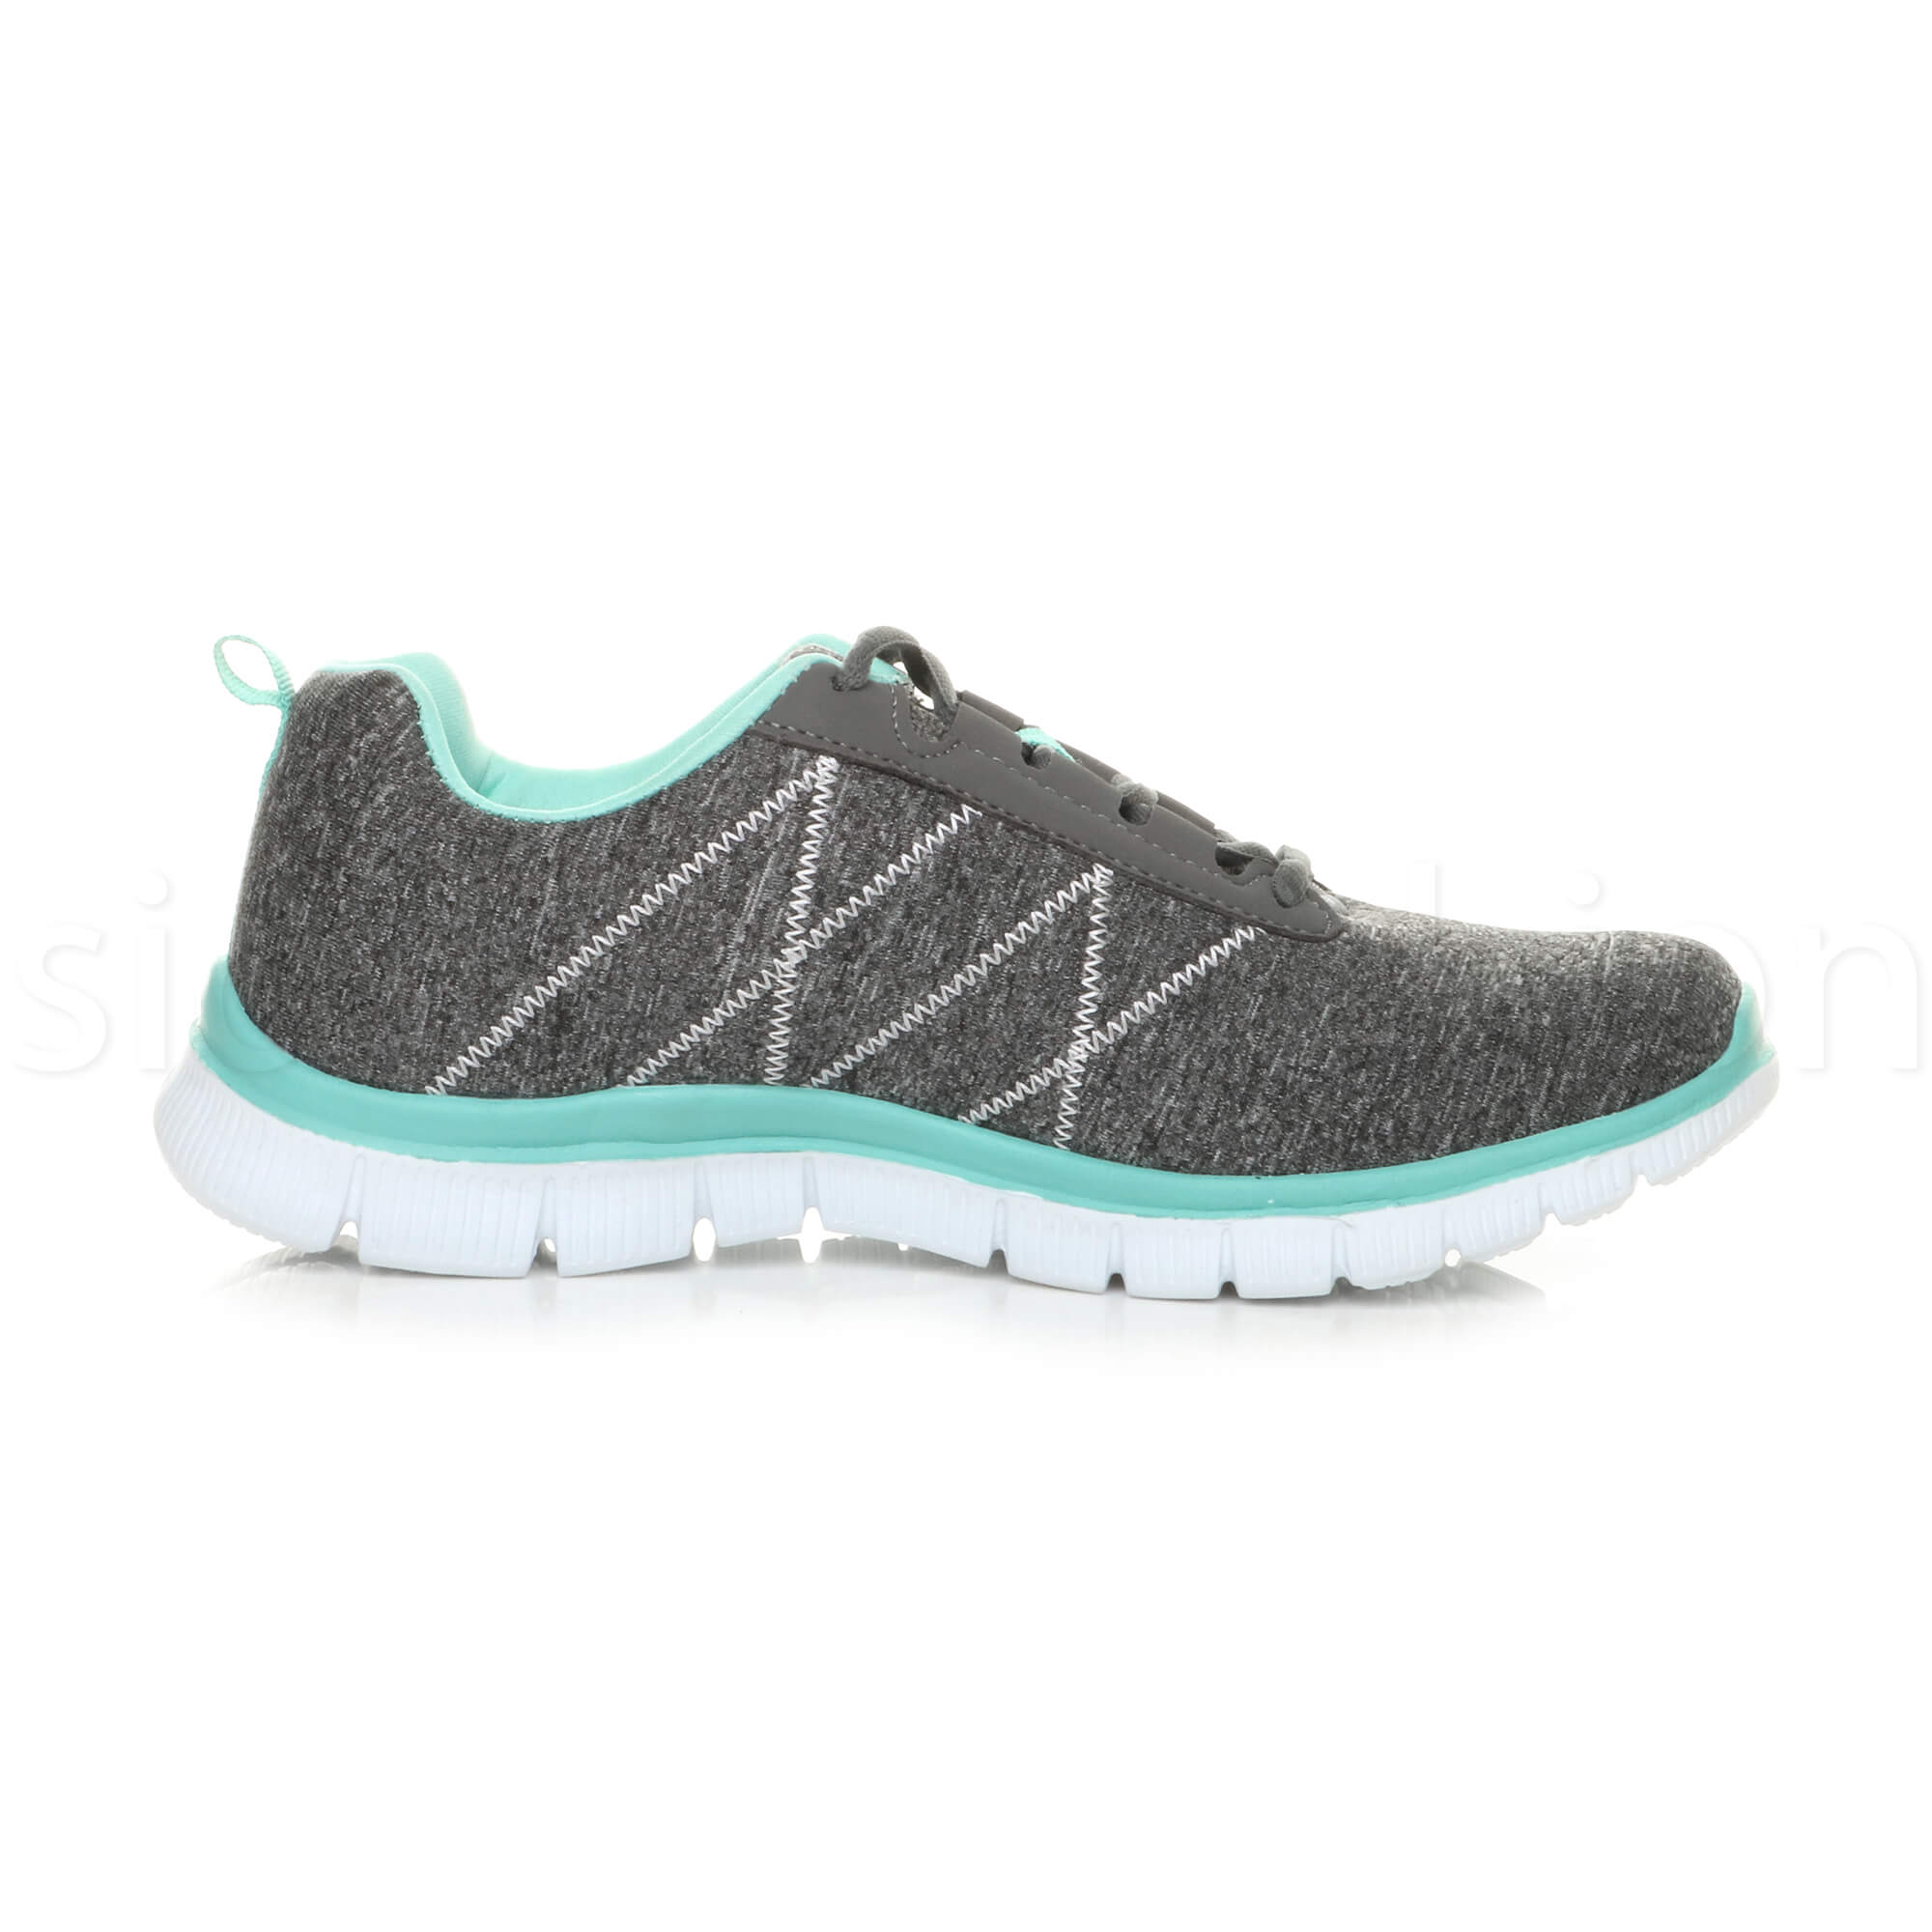 Womens-ladies-comfort-memory-foam-lace-up-trainers-activewear-sneakers-gym-shoes thumbnail 46